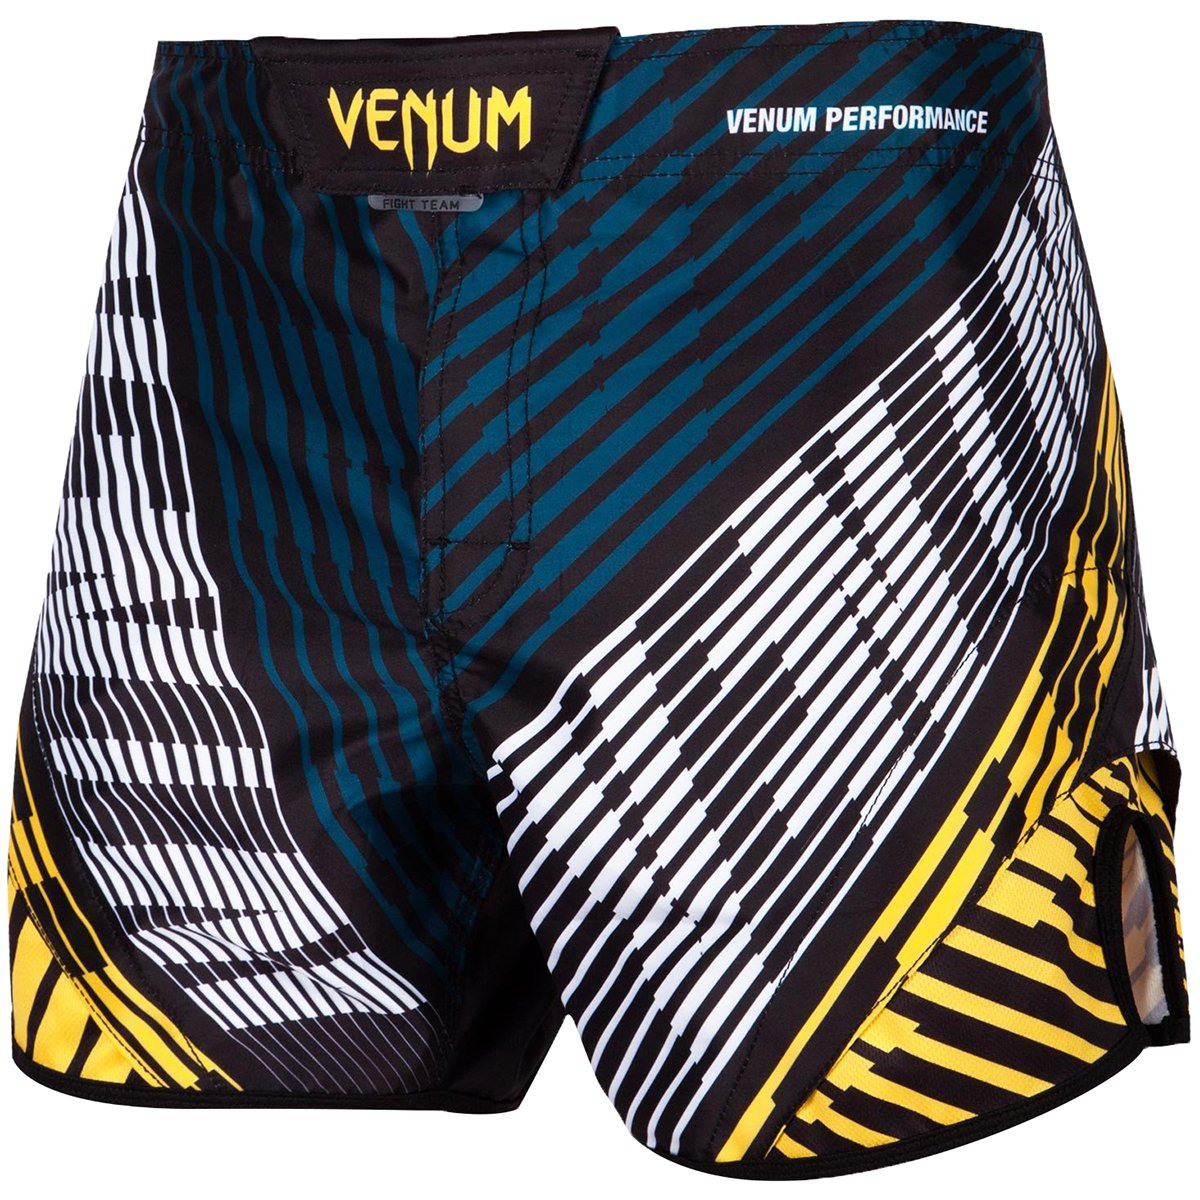 Venum Plasma Mid-Thigh MMA Fight Shorts - XL - Black/Yellow by Venum